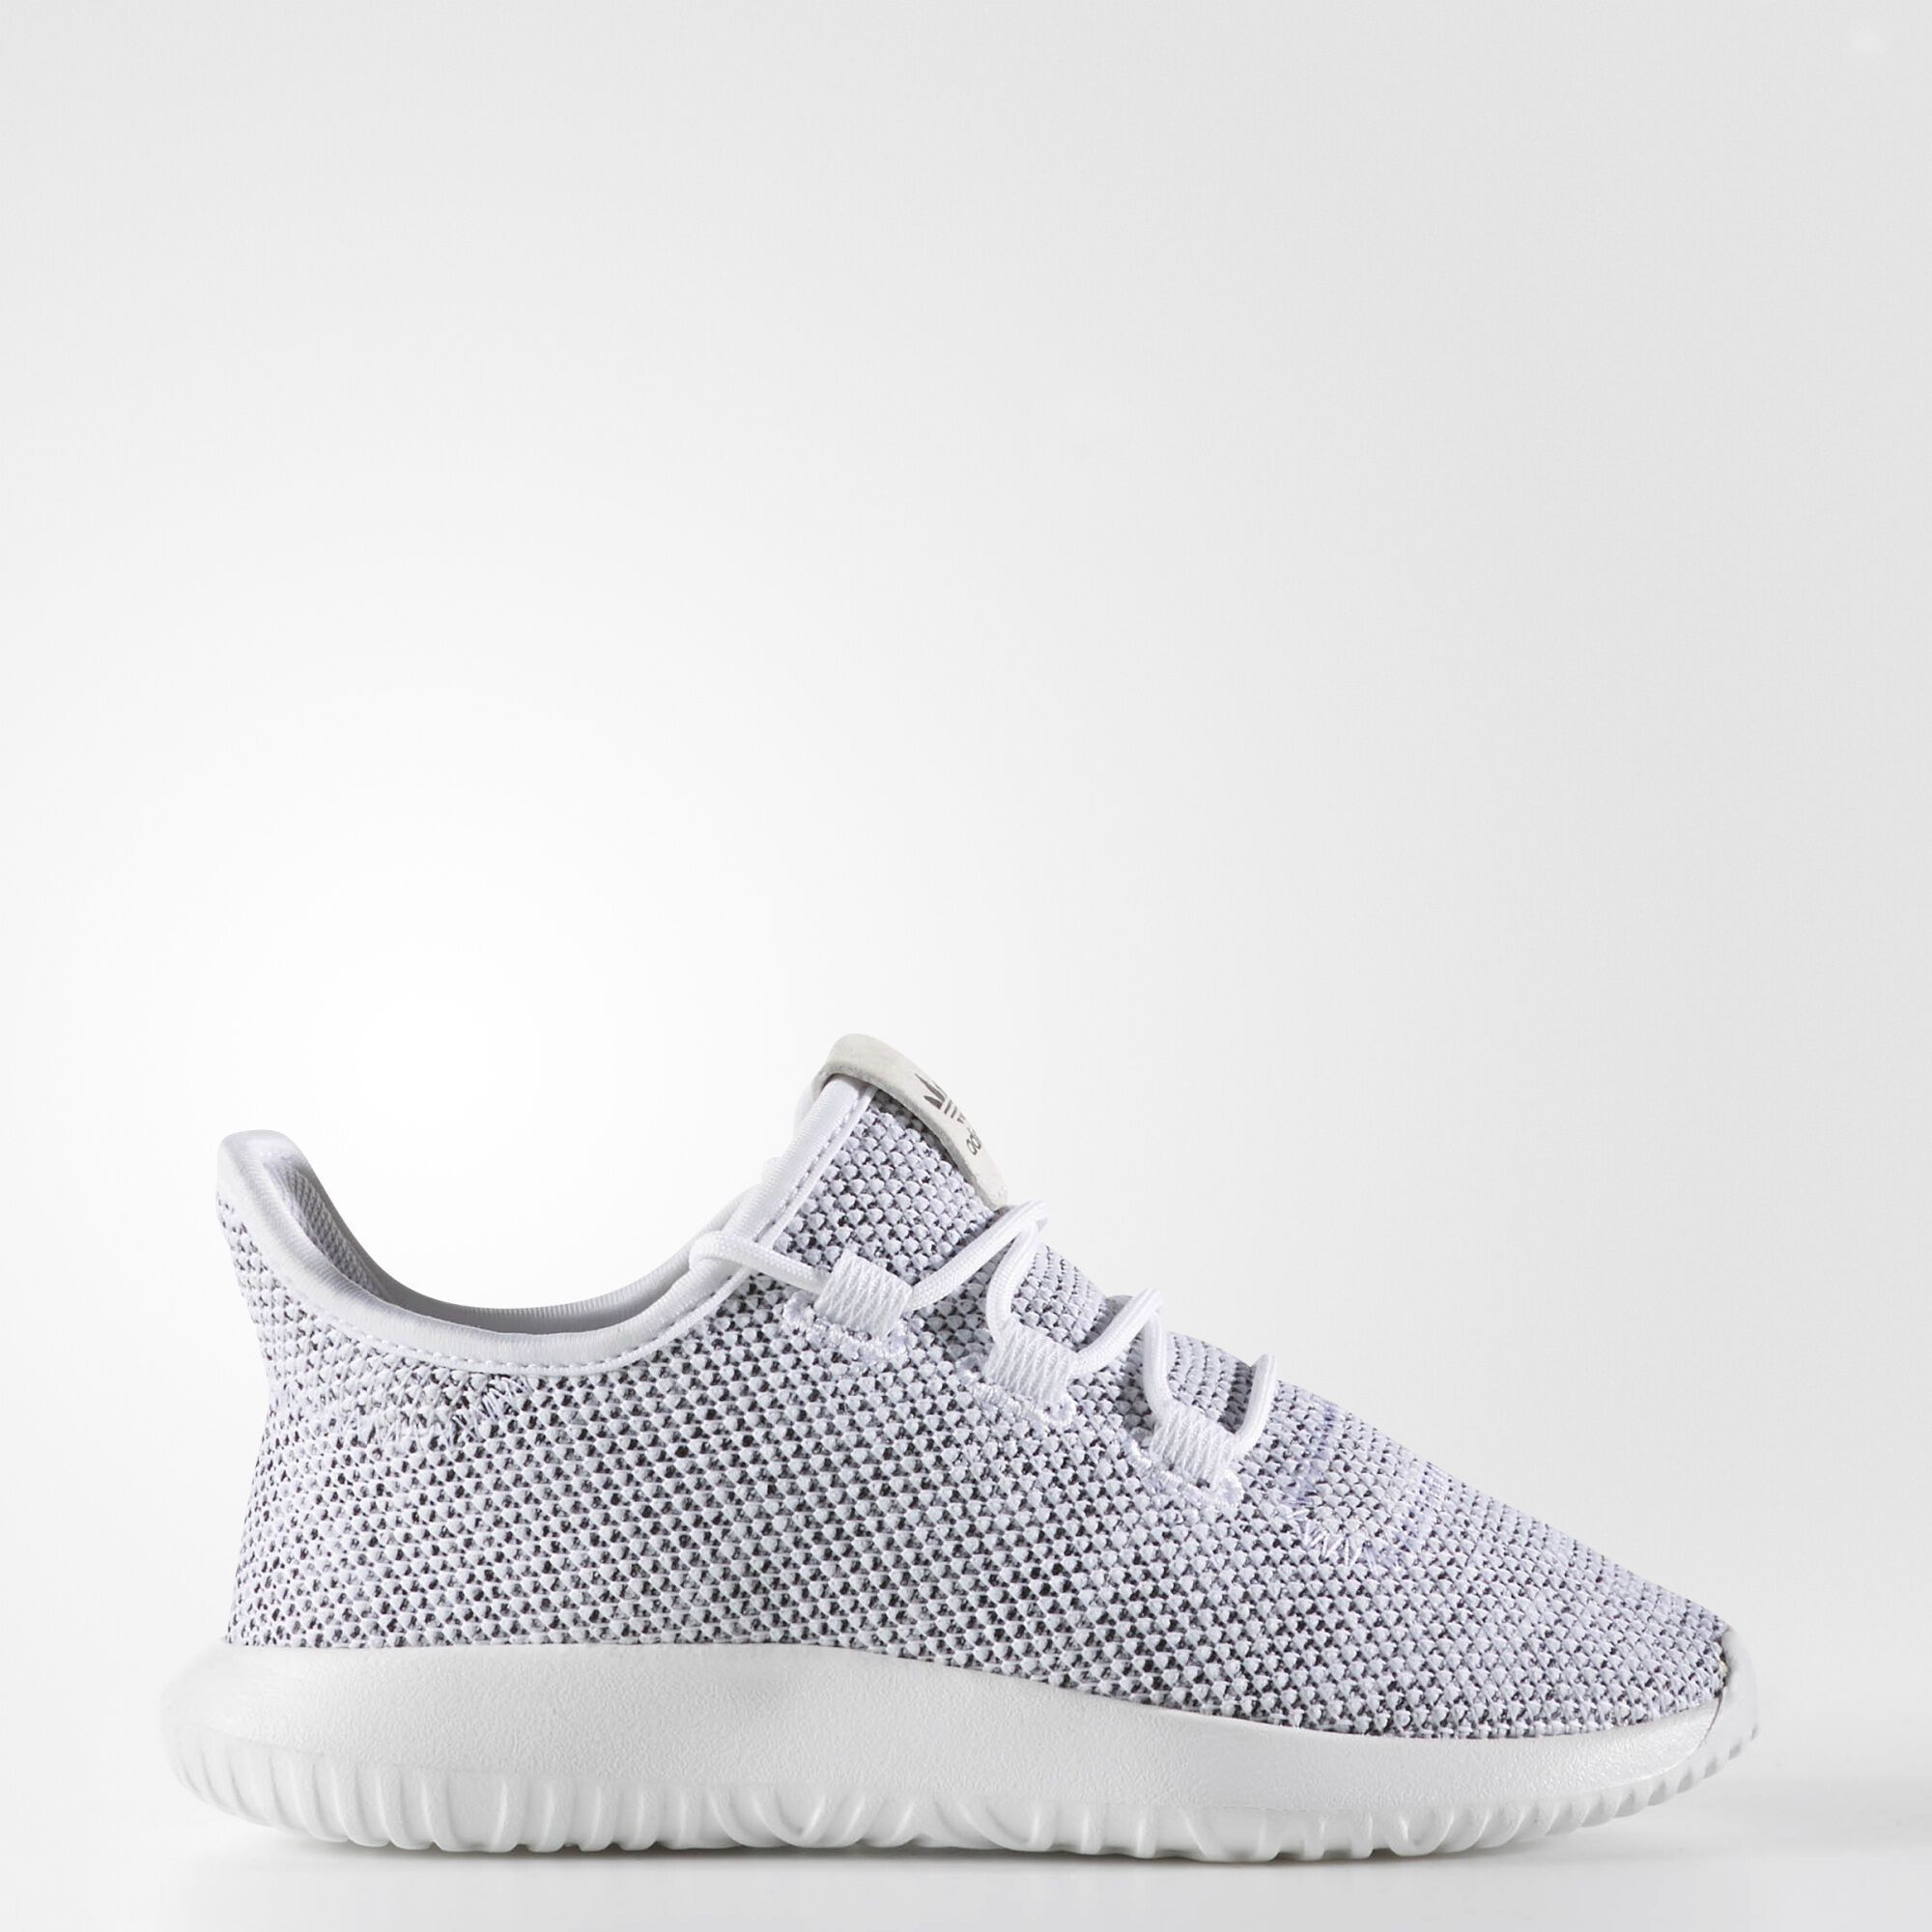 Adidas Originals Tubular X Primeknit Boys 'Grade Kids